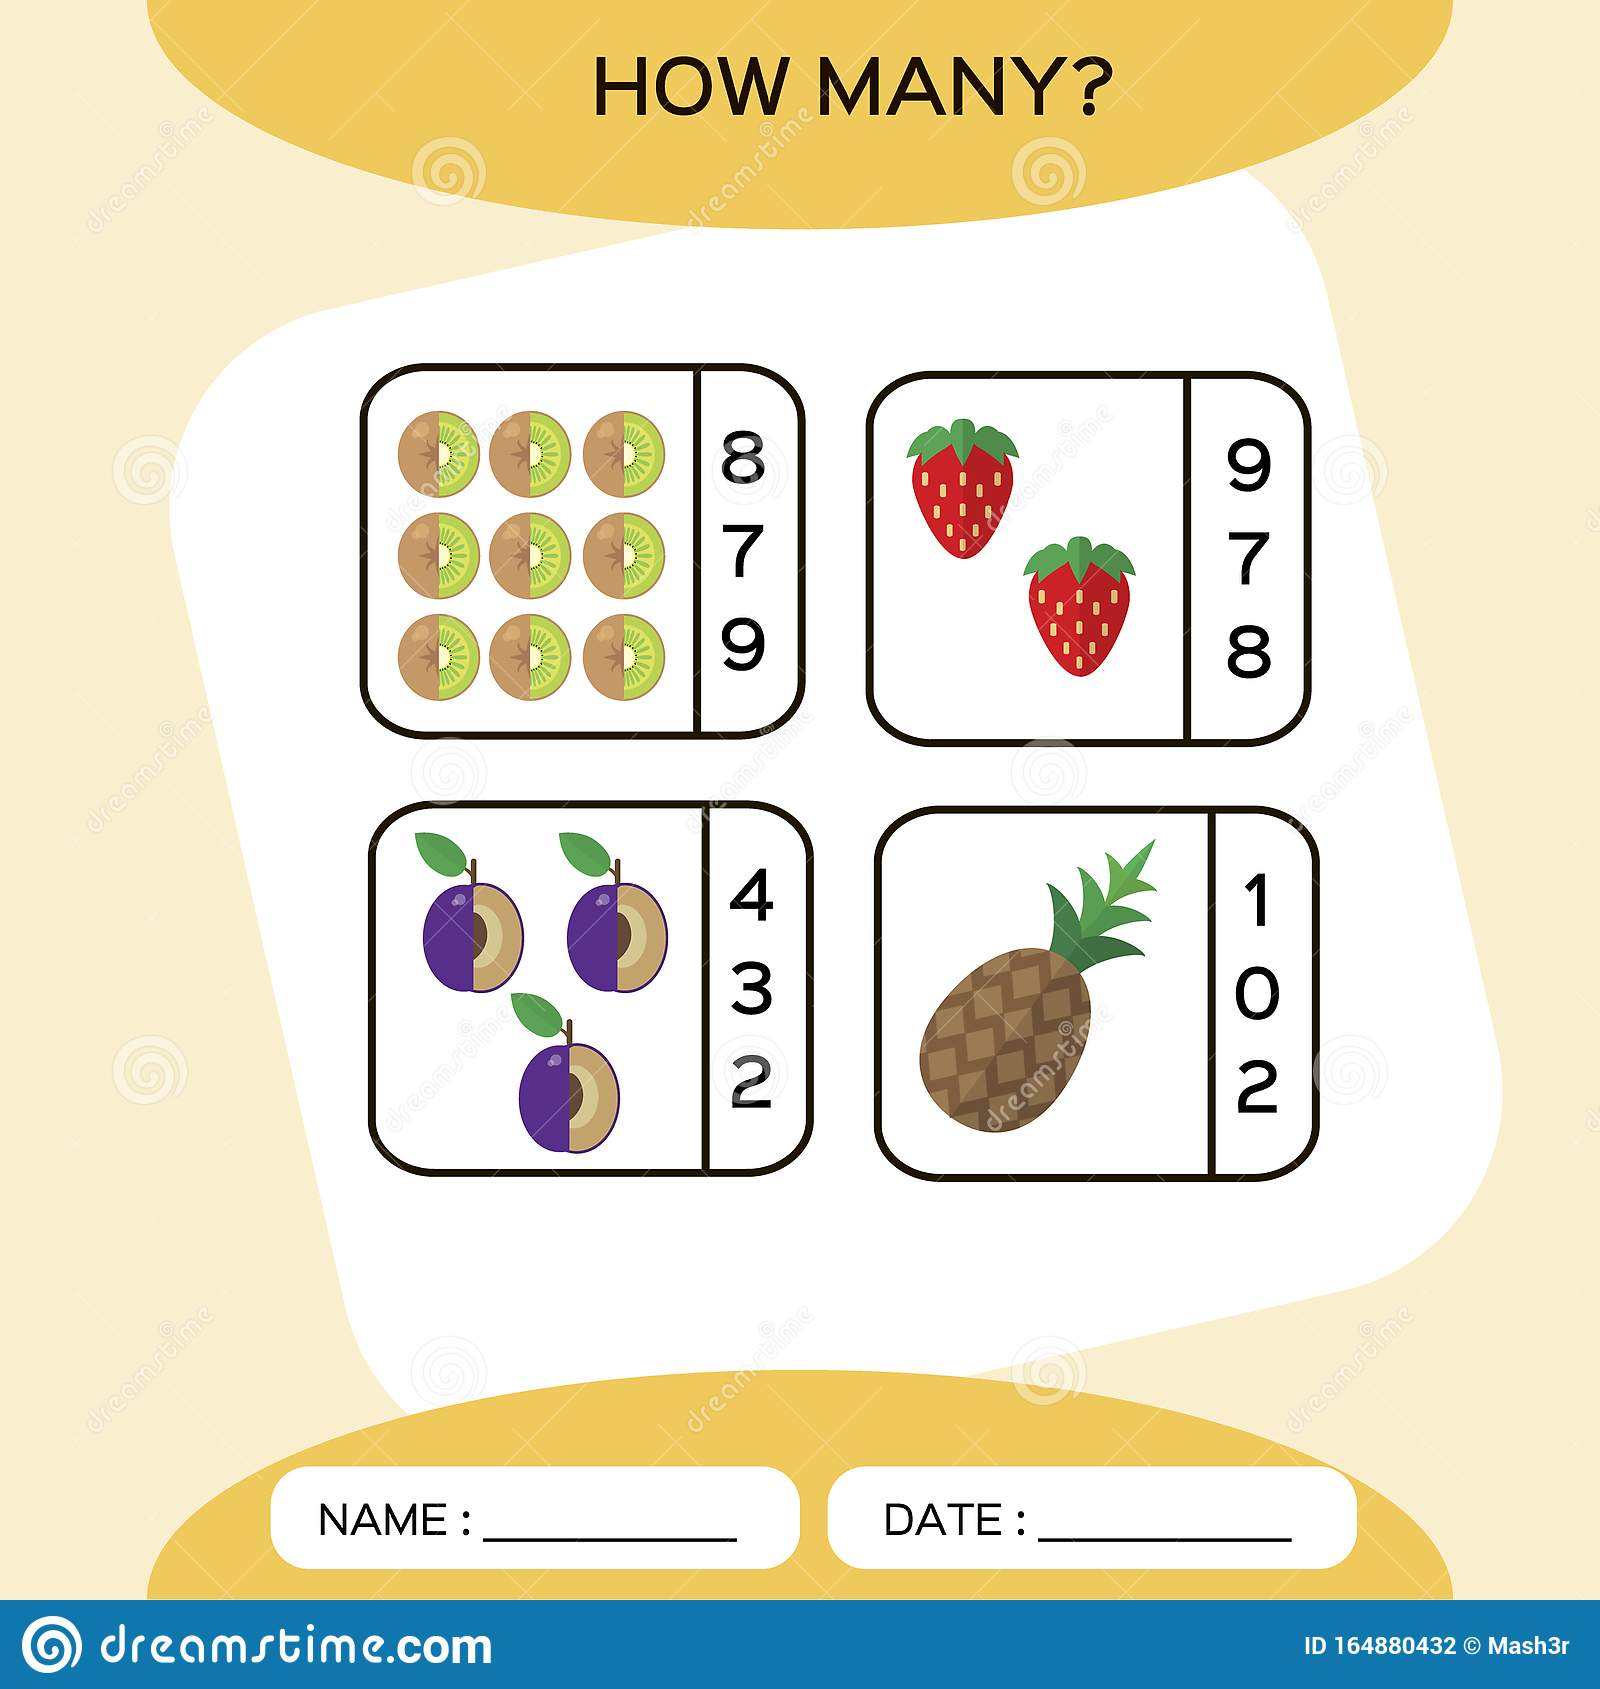 How Many Count Game Education Counting Game For